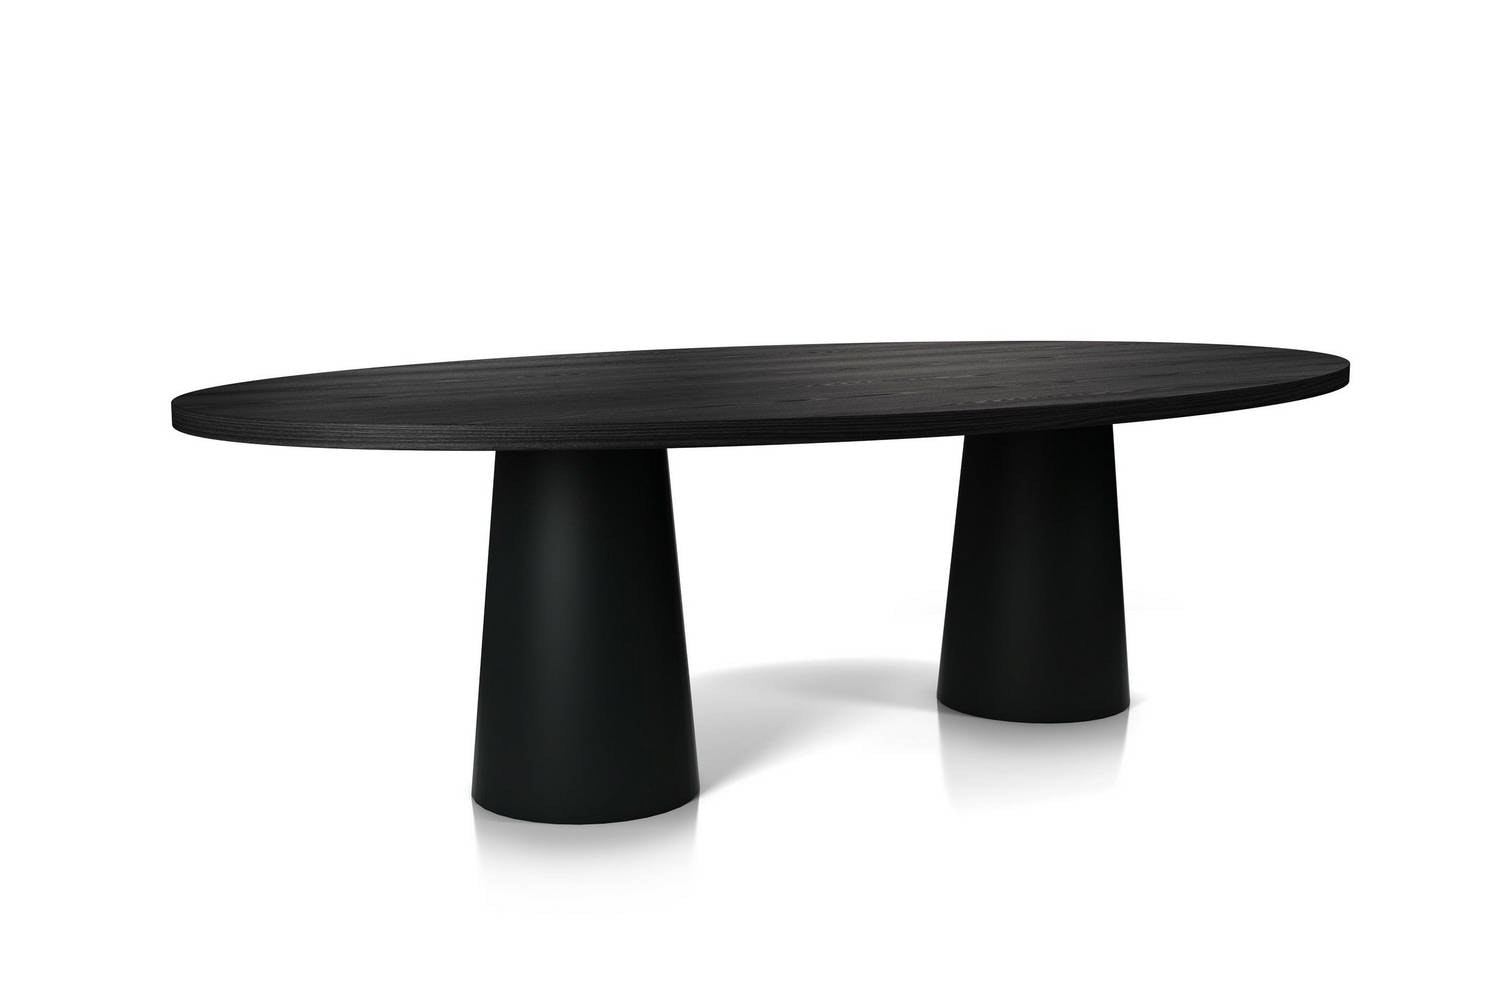 Container Table with Oval Top by Marcel Wanders for Moooi